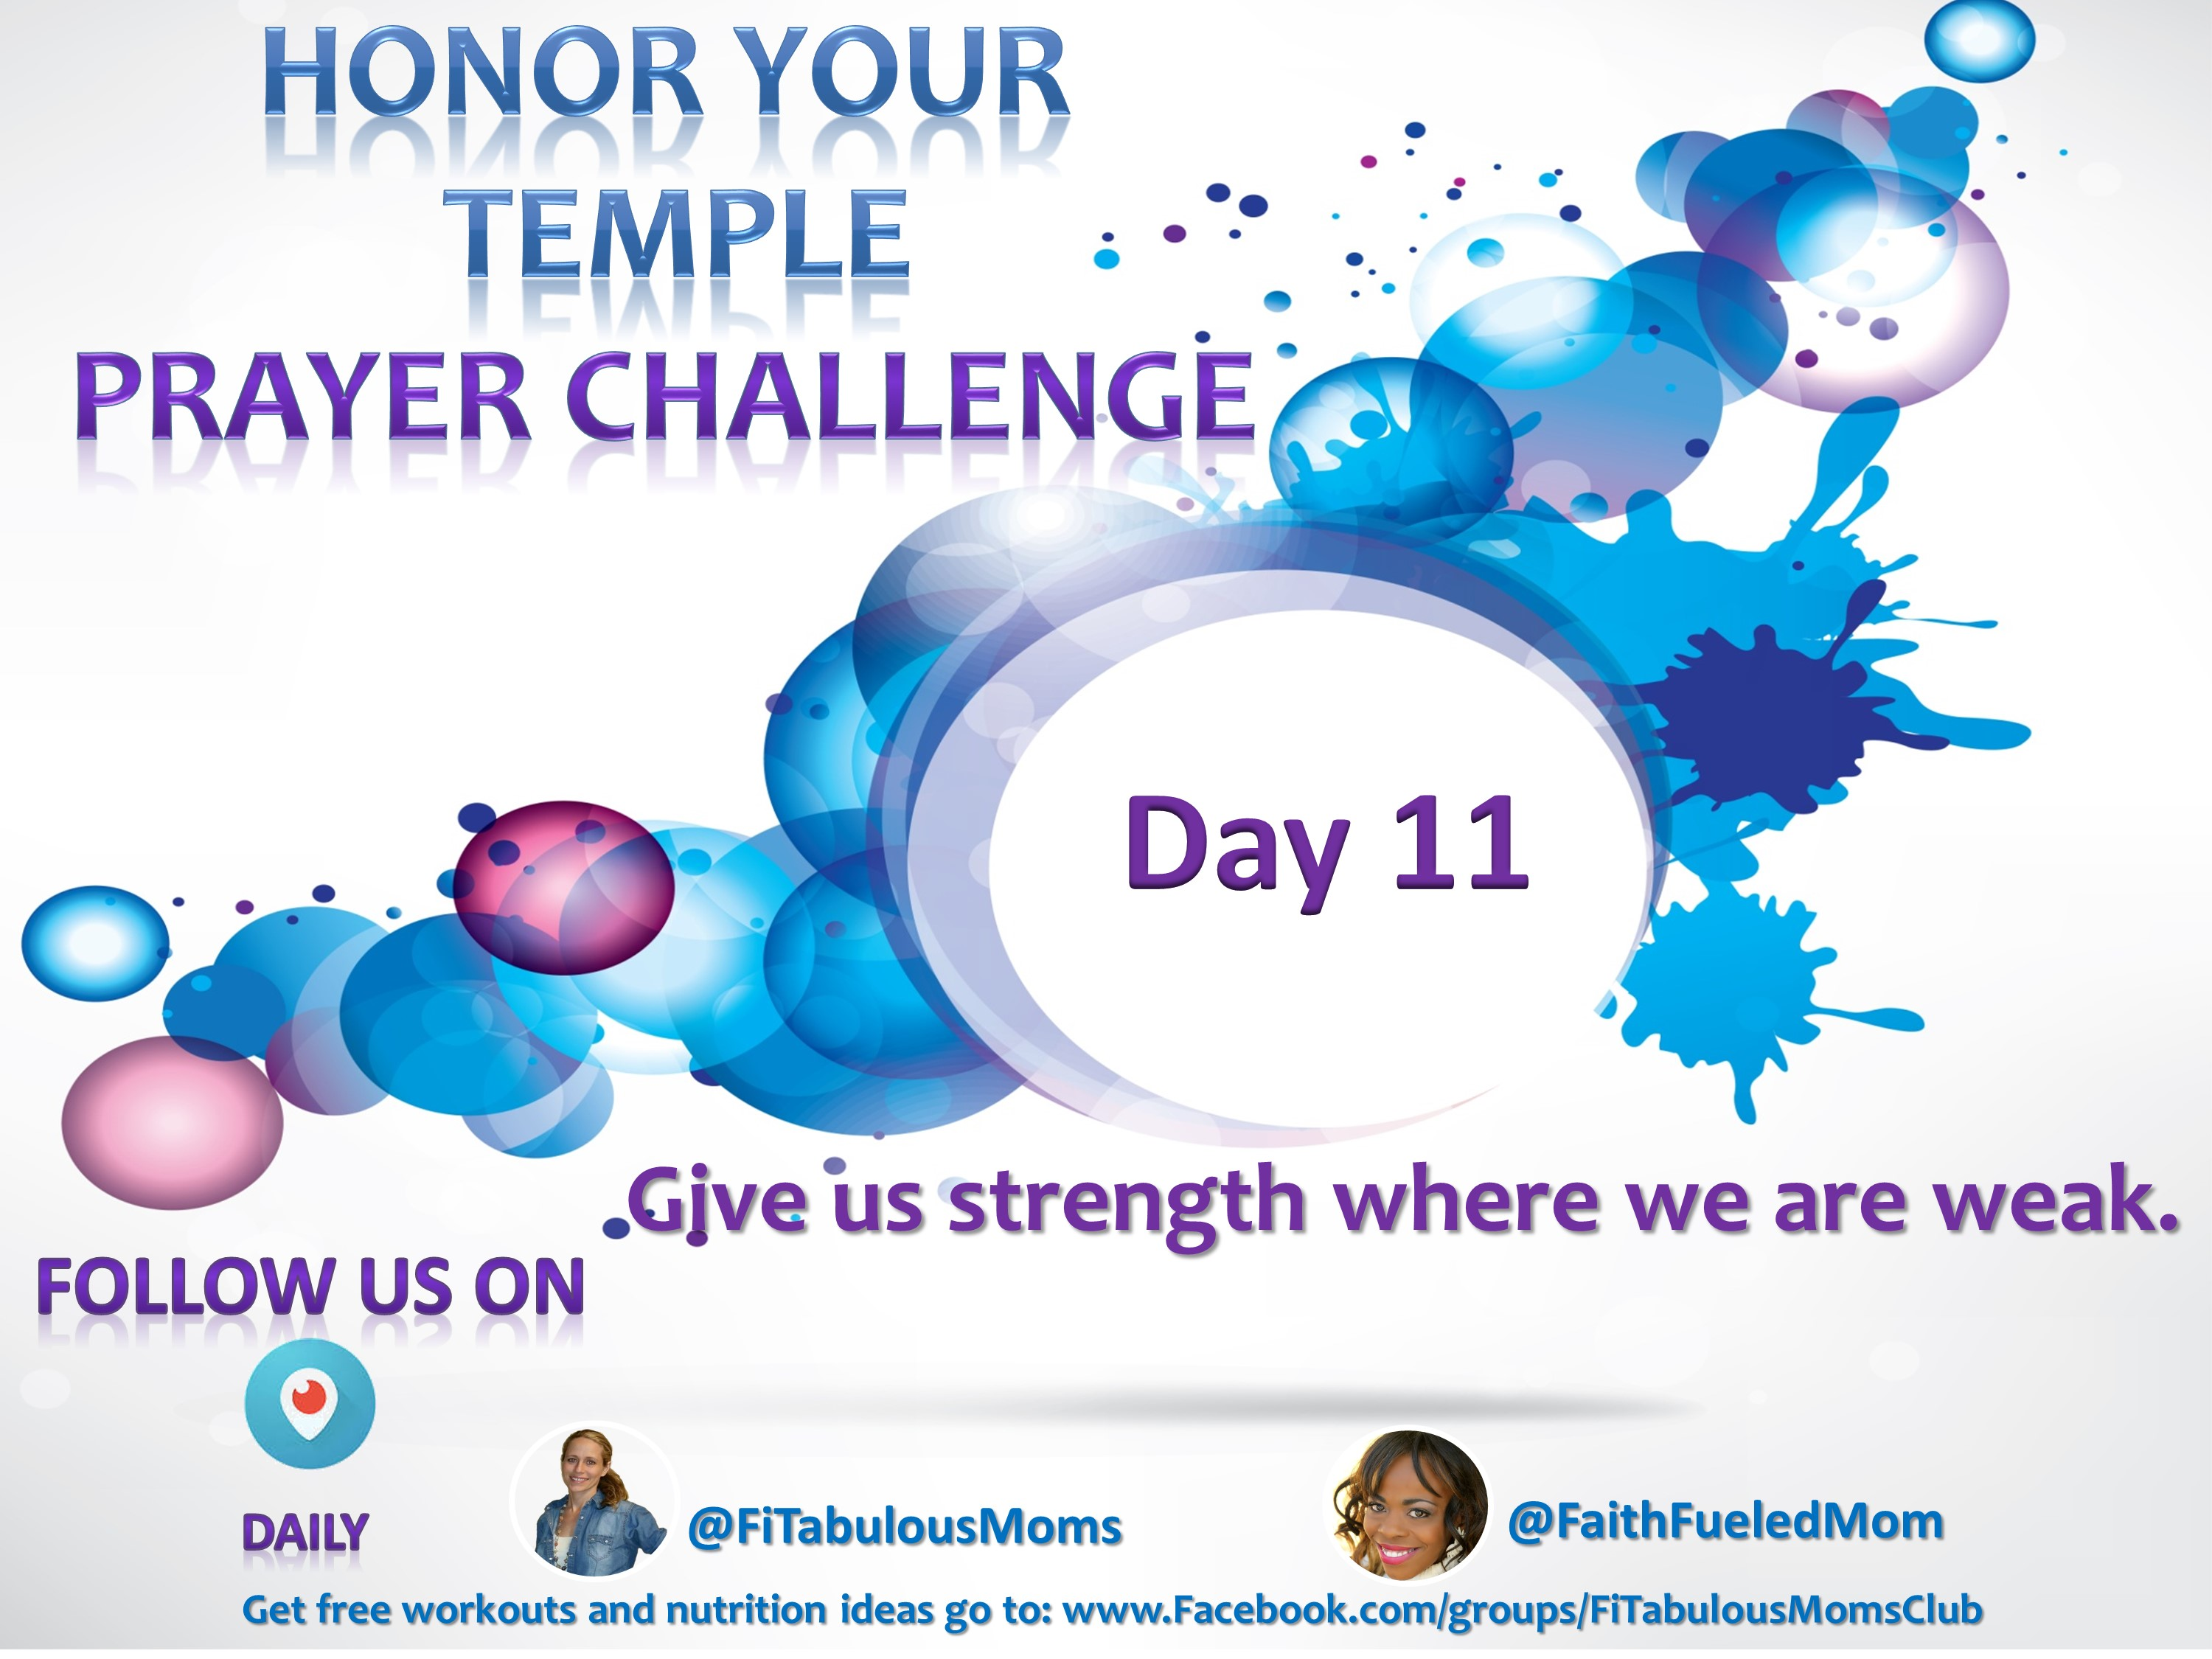 Day 11 Honor Your Temple Prayer Challenge